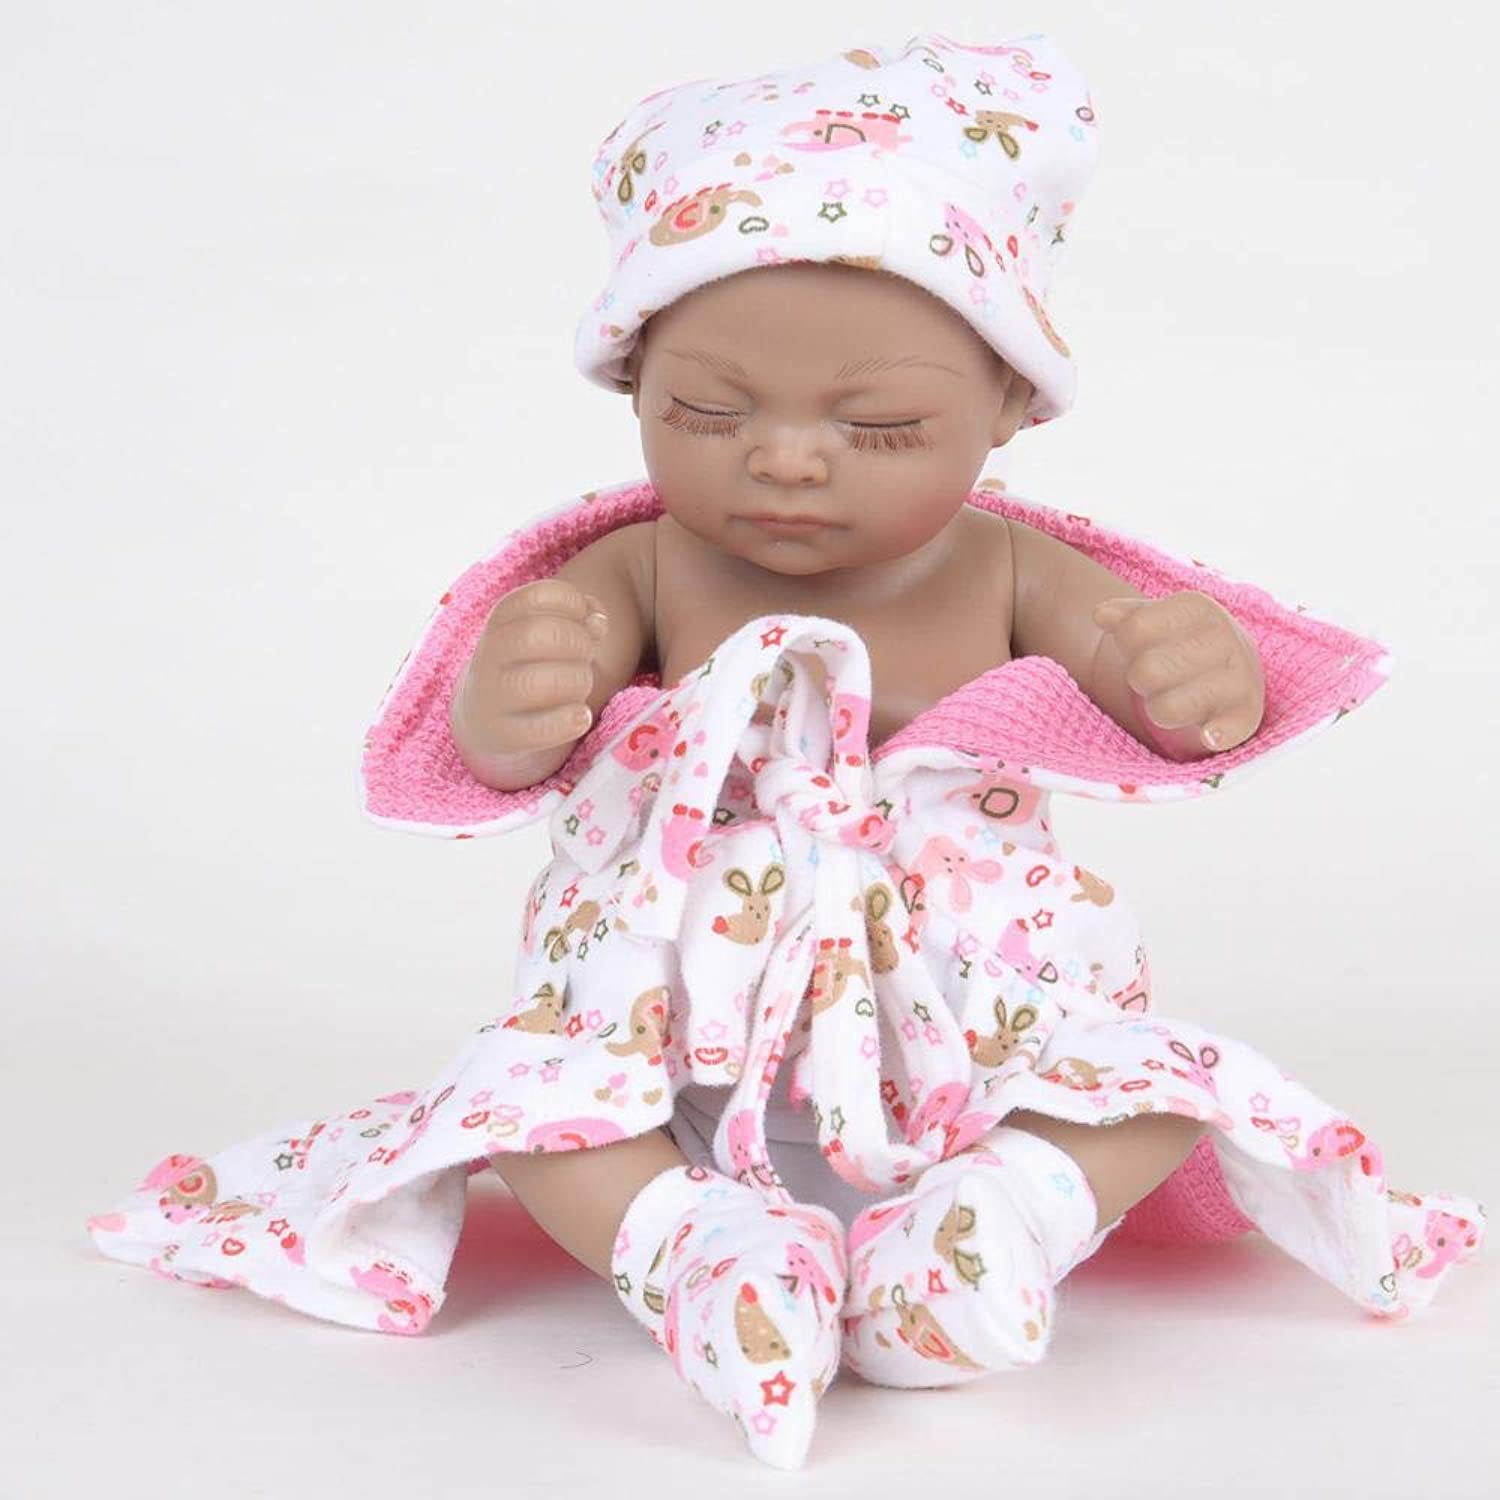 Hongge Reborn babies Lifelike silicone Reborn doll toy looks real newborn baby doll toy Gift 28cm